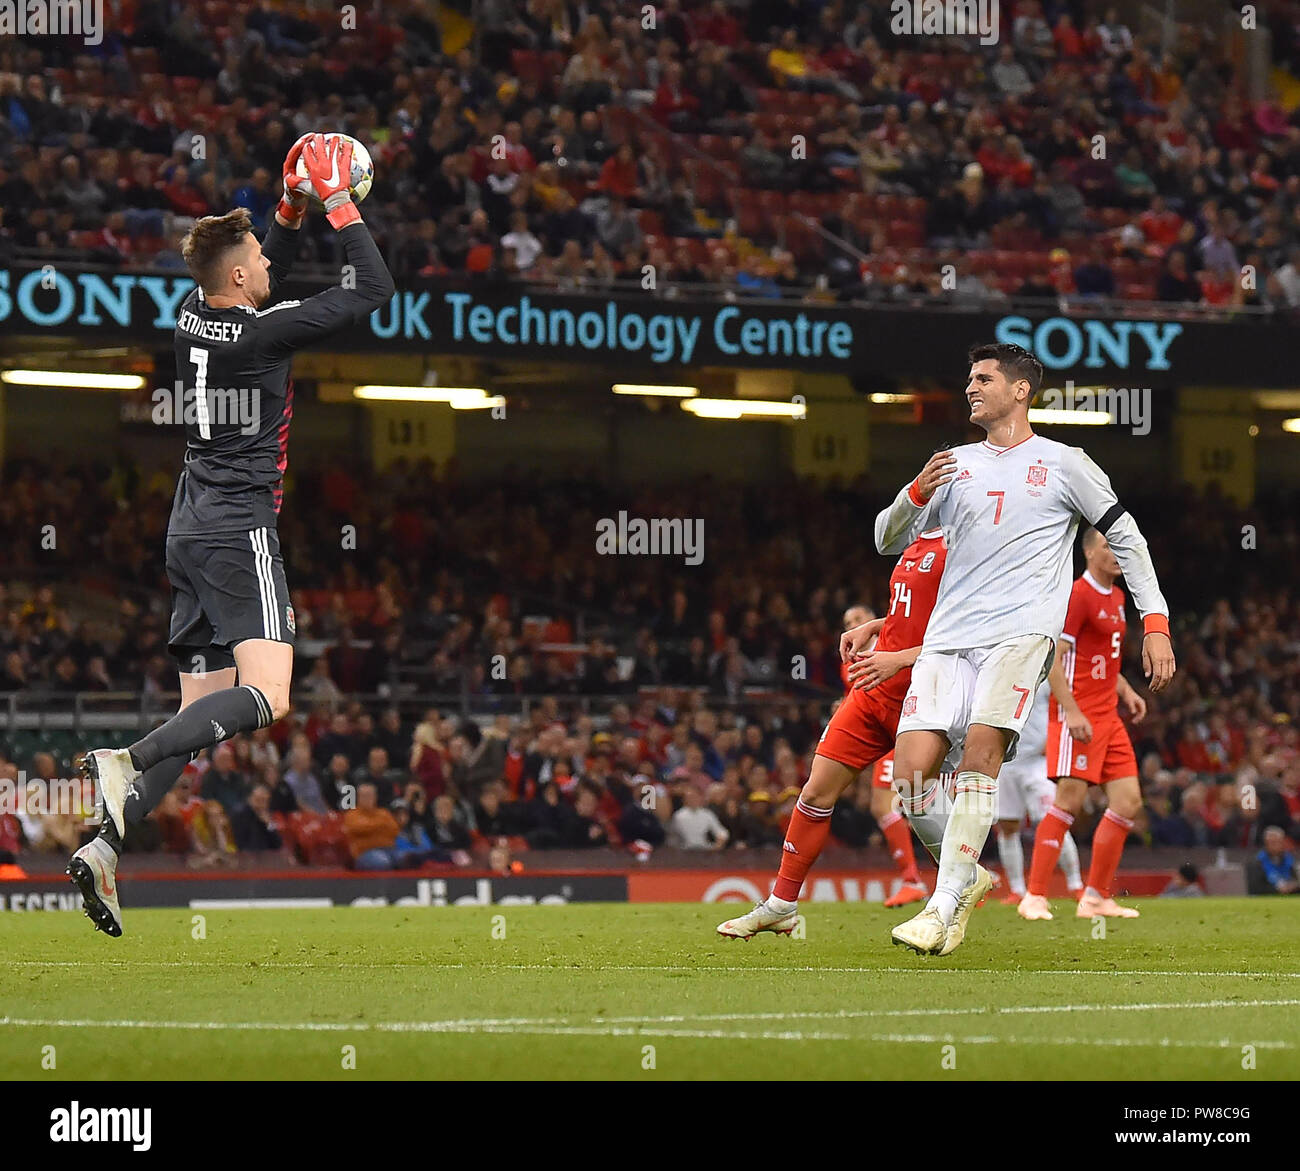 Wales keeper Wayne Hennessey makes save  during the Wales v Spain Friendly Football at Principalty Stadium Cardiff Wales on October 13 2018 Graham / G Stock Photo